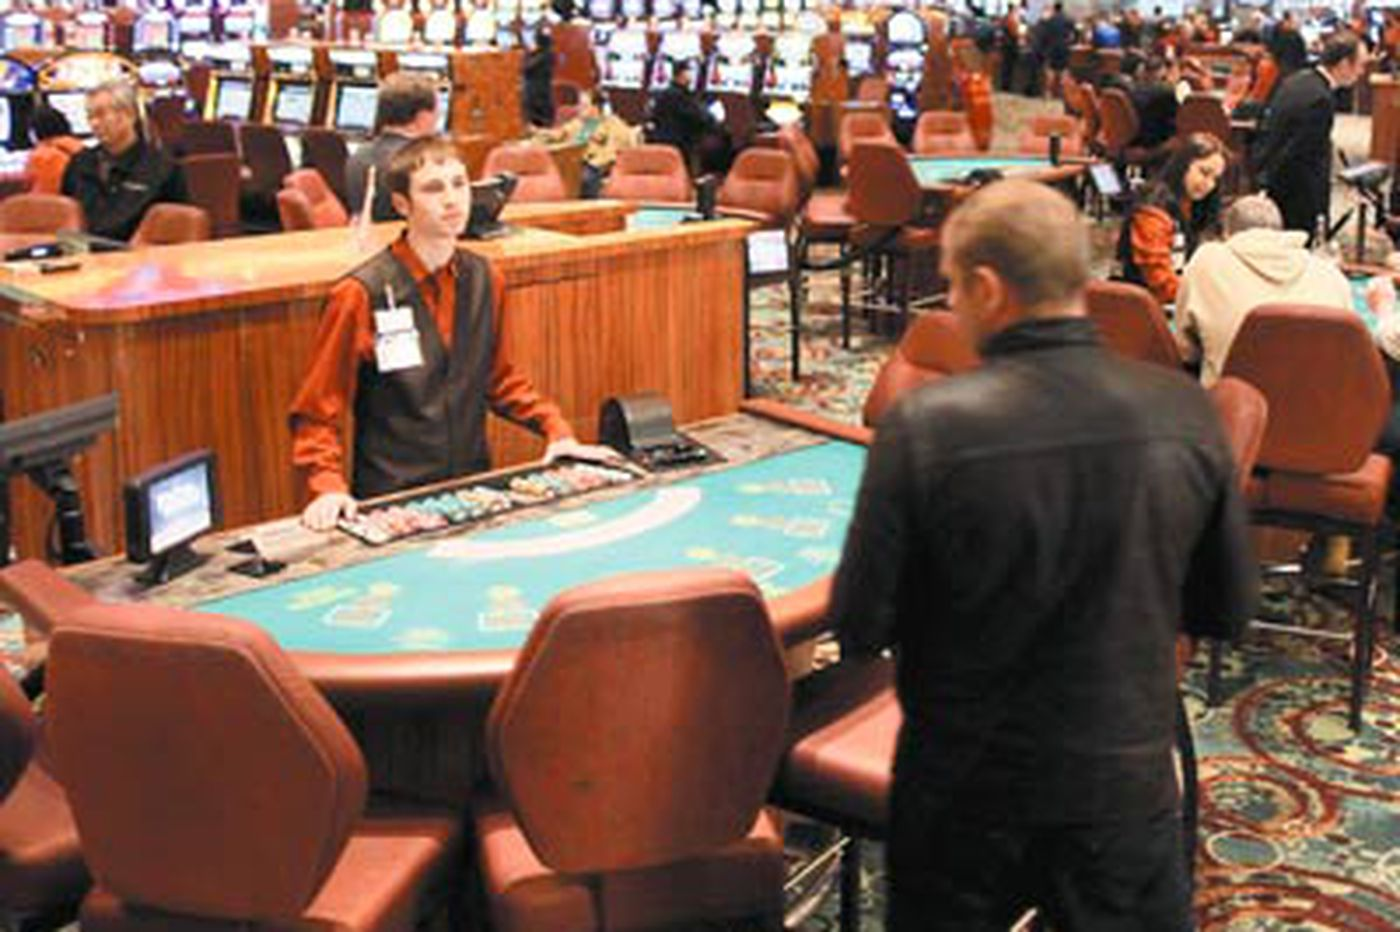 Should Parx Casino be liable in child-neglect cases?